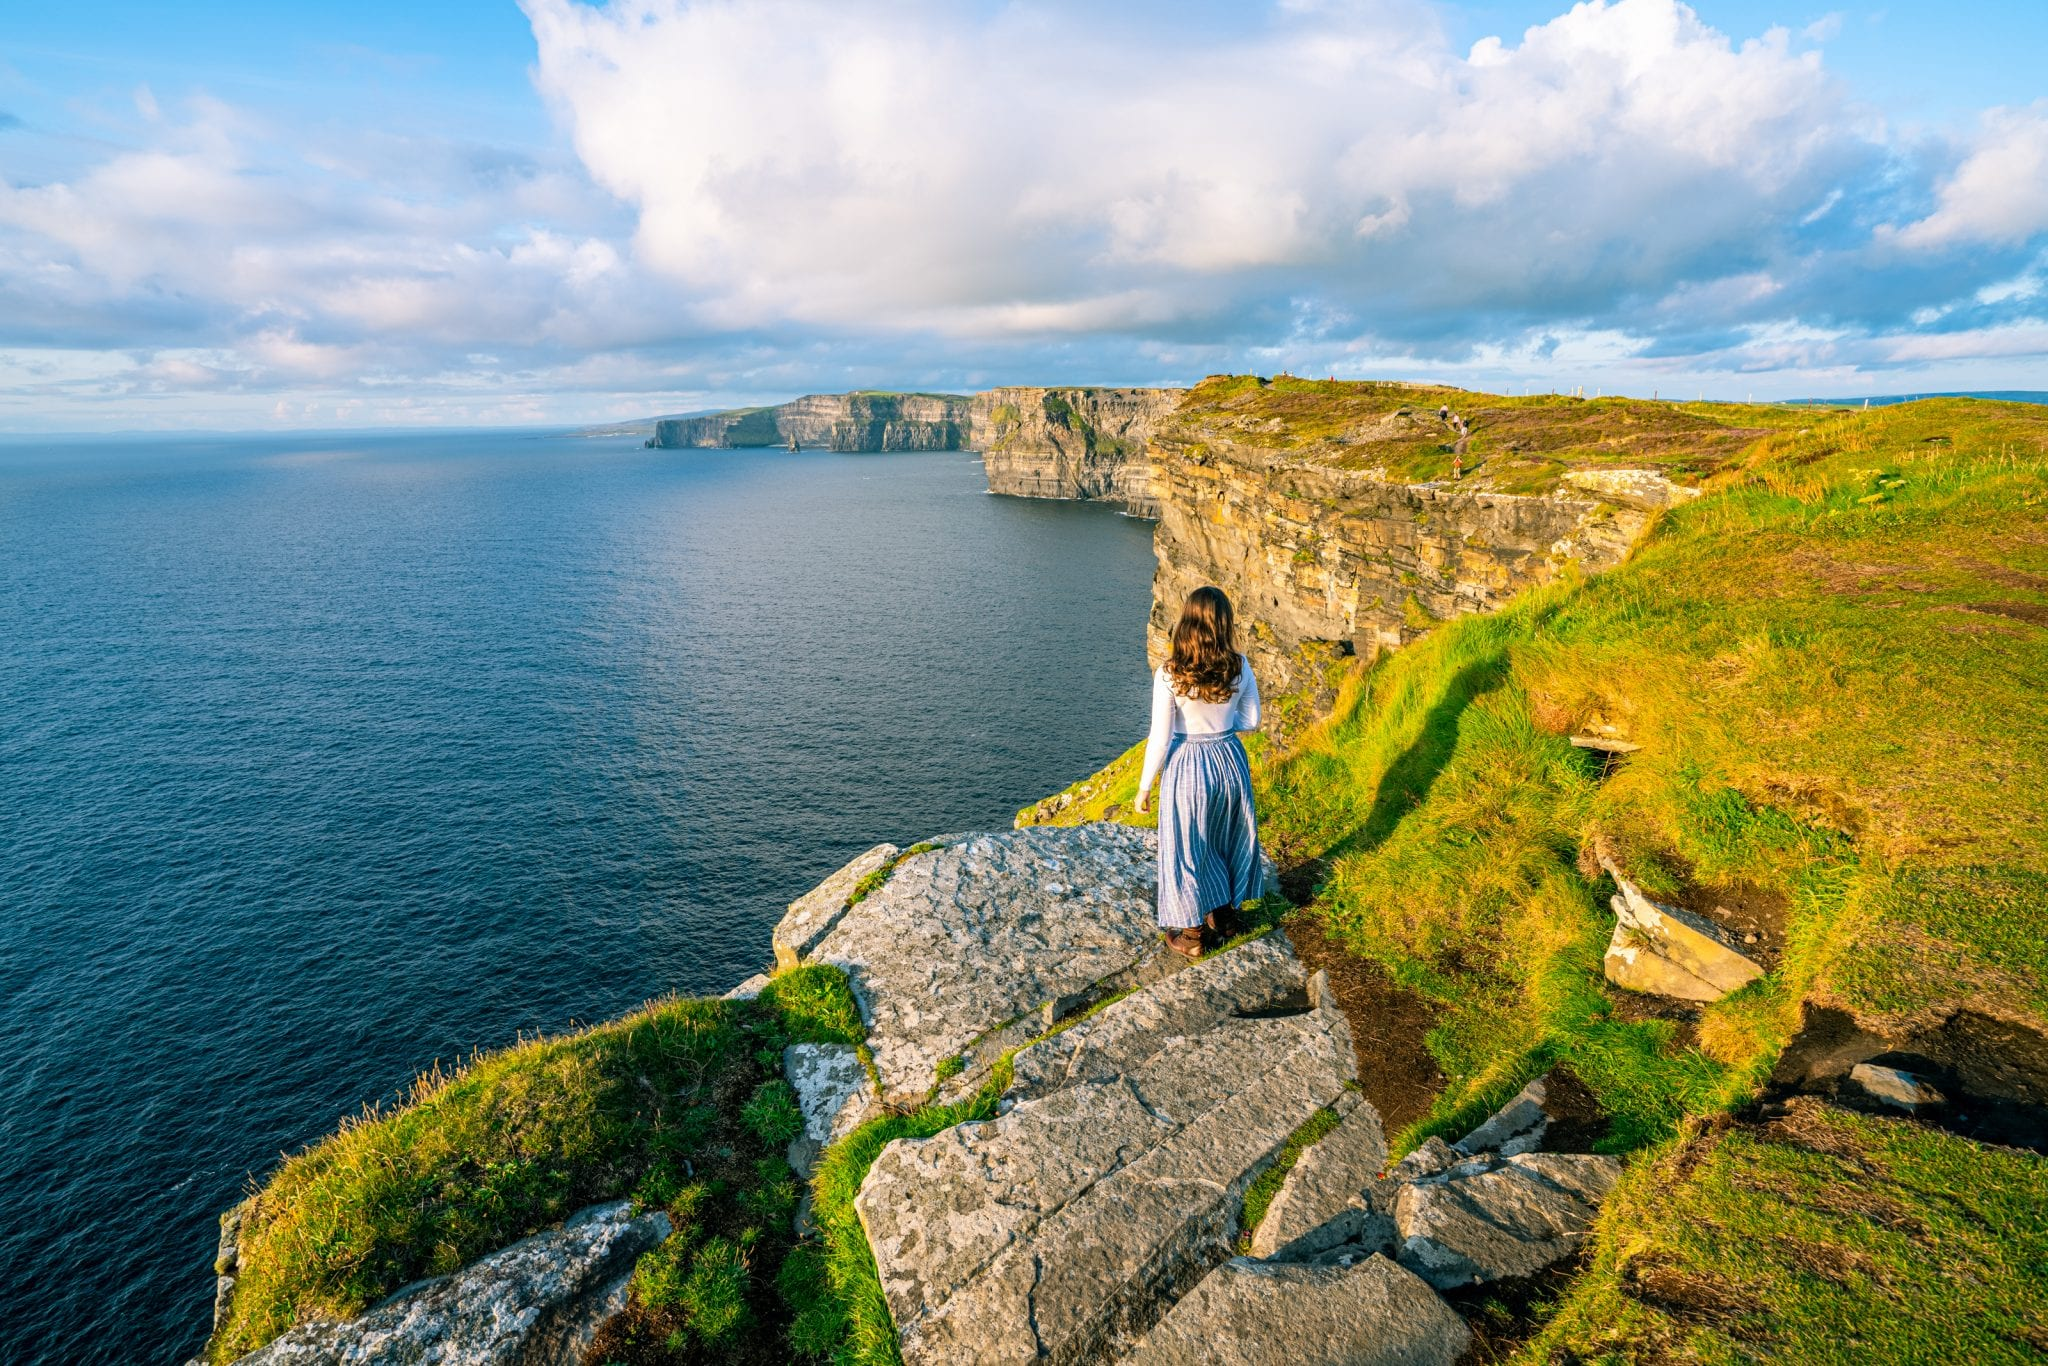 Kate Storm in a blue skirt standing in front of the Cliffs of Moher in Ireland. She's looking away from the camera.